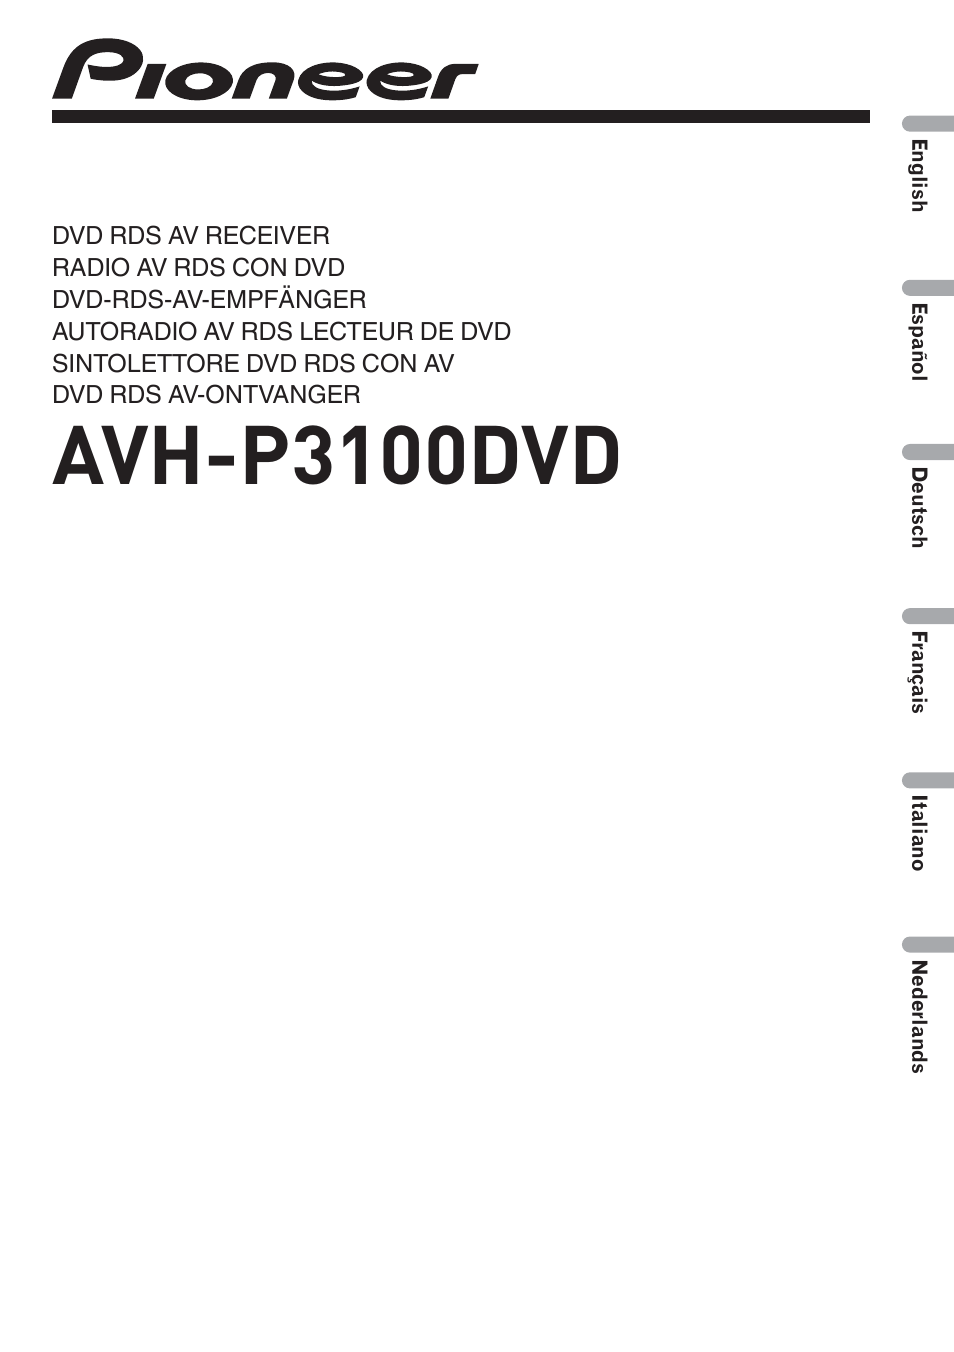 Avh P3100dvd Pioneer Manual P2300dvd Wiring Diagram User 86 Pages Rh Manualsdir Com Espaol Model